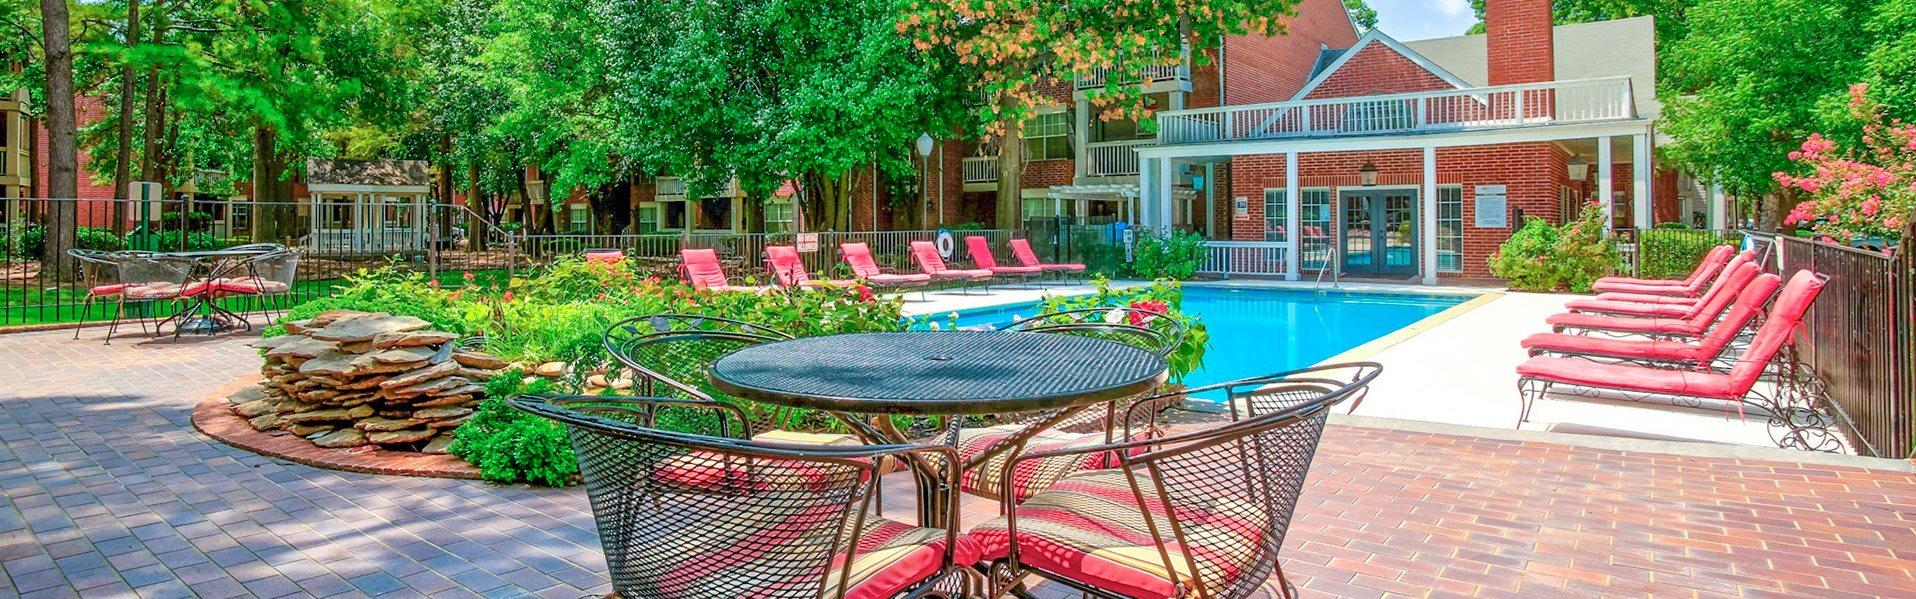 Greenbriar Apartments in Tulsa Oklahoma has a sparkling pool with lounge chairs surrounding it. Now renting 1 and 2 bedrooms!